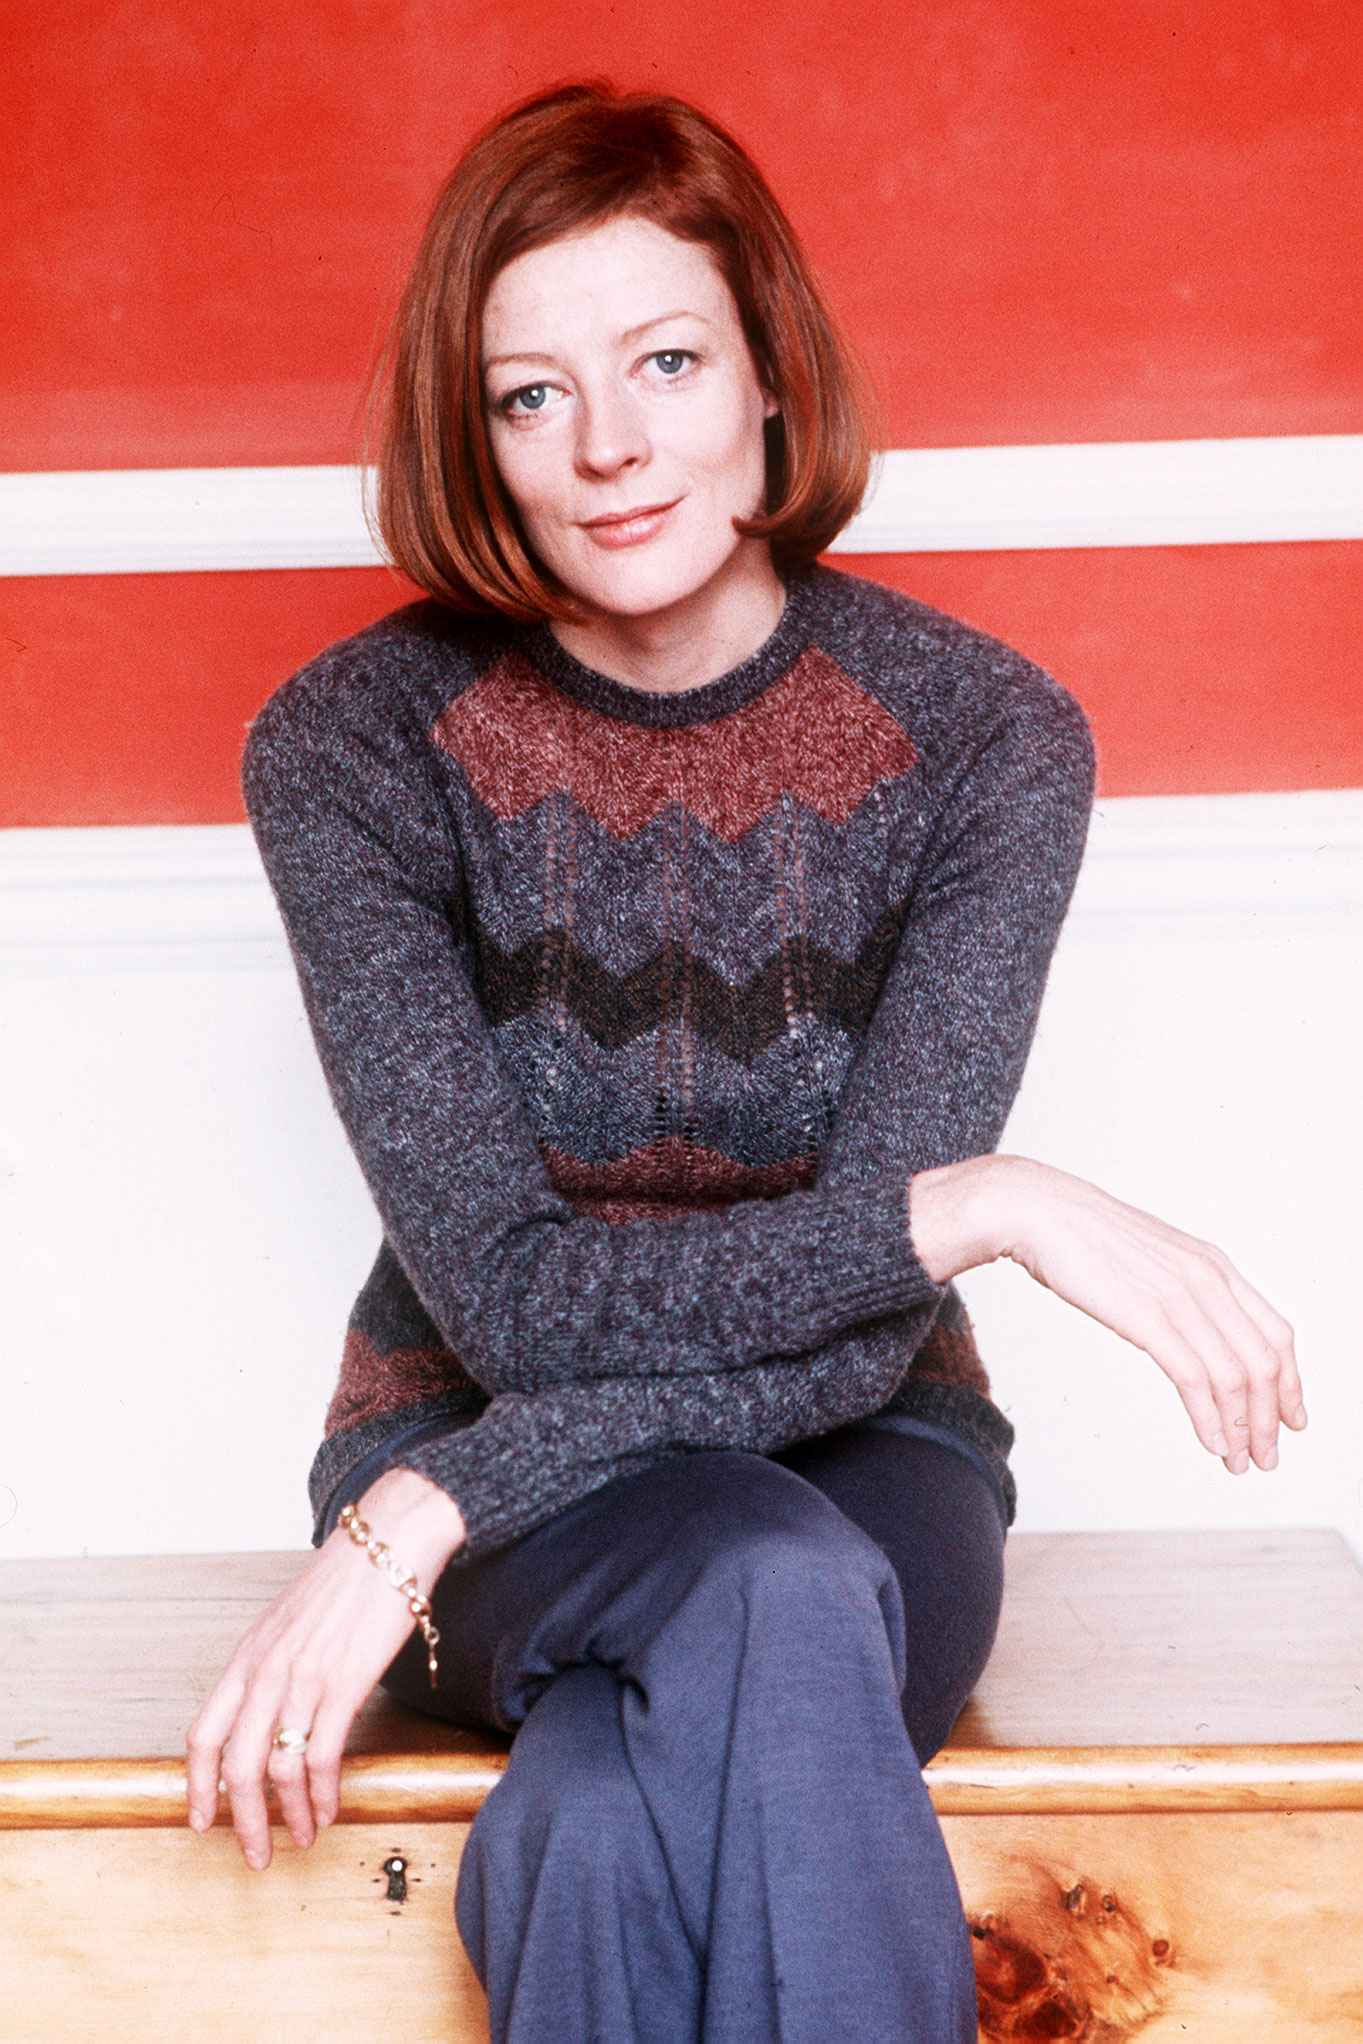 Harry Potter House Maggie Smith Images Maggie Smith Hd Wallpaper And